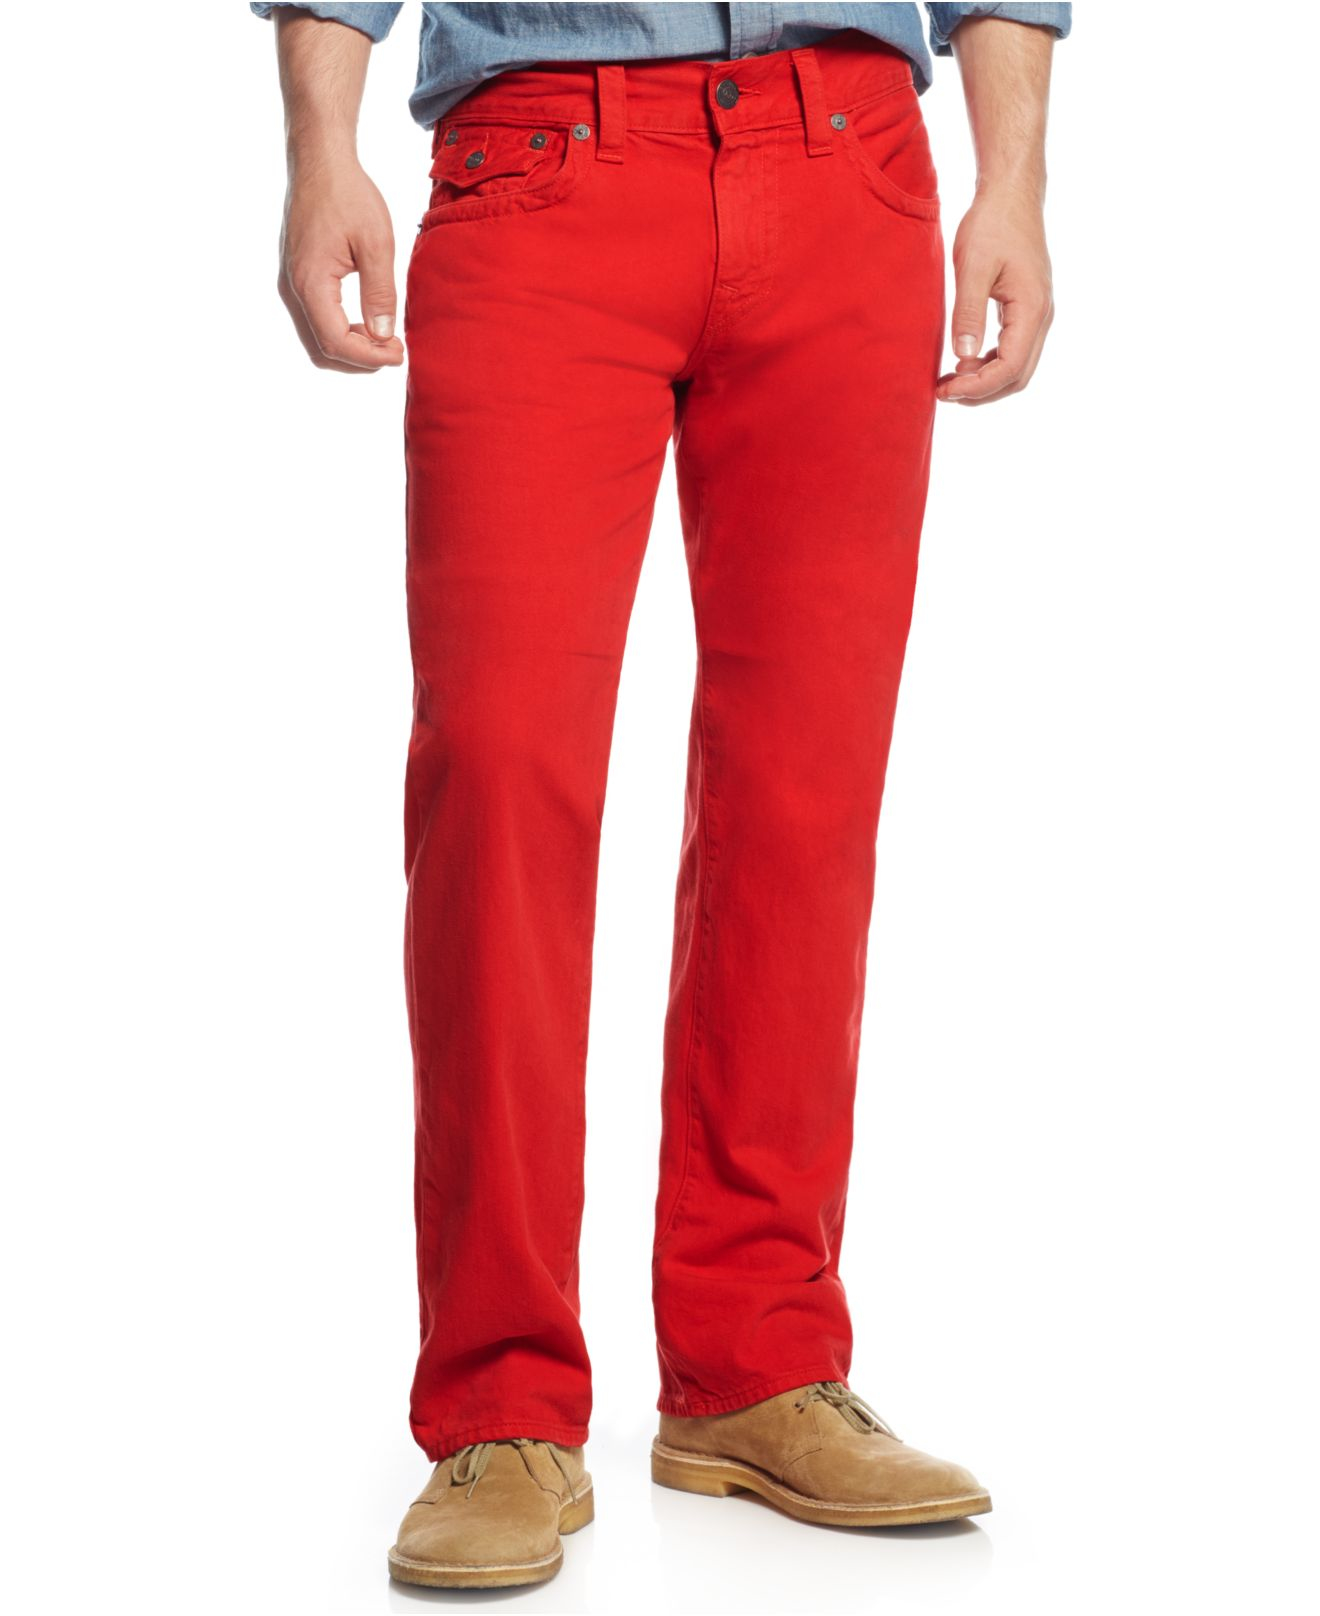 True religion Men's Ricky Relaxed Straight Fit Colored ...